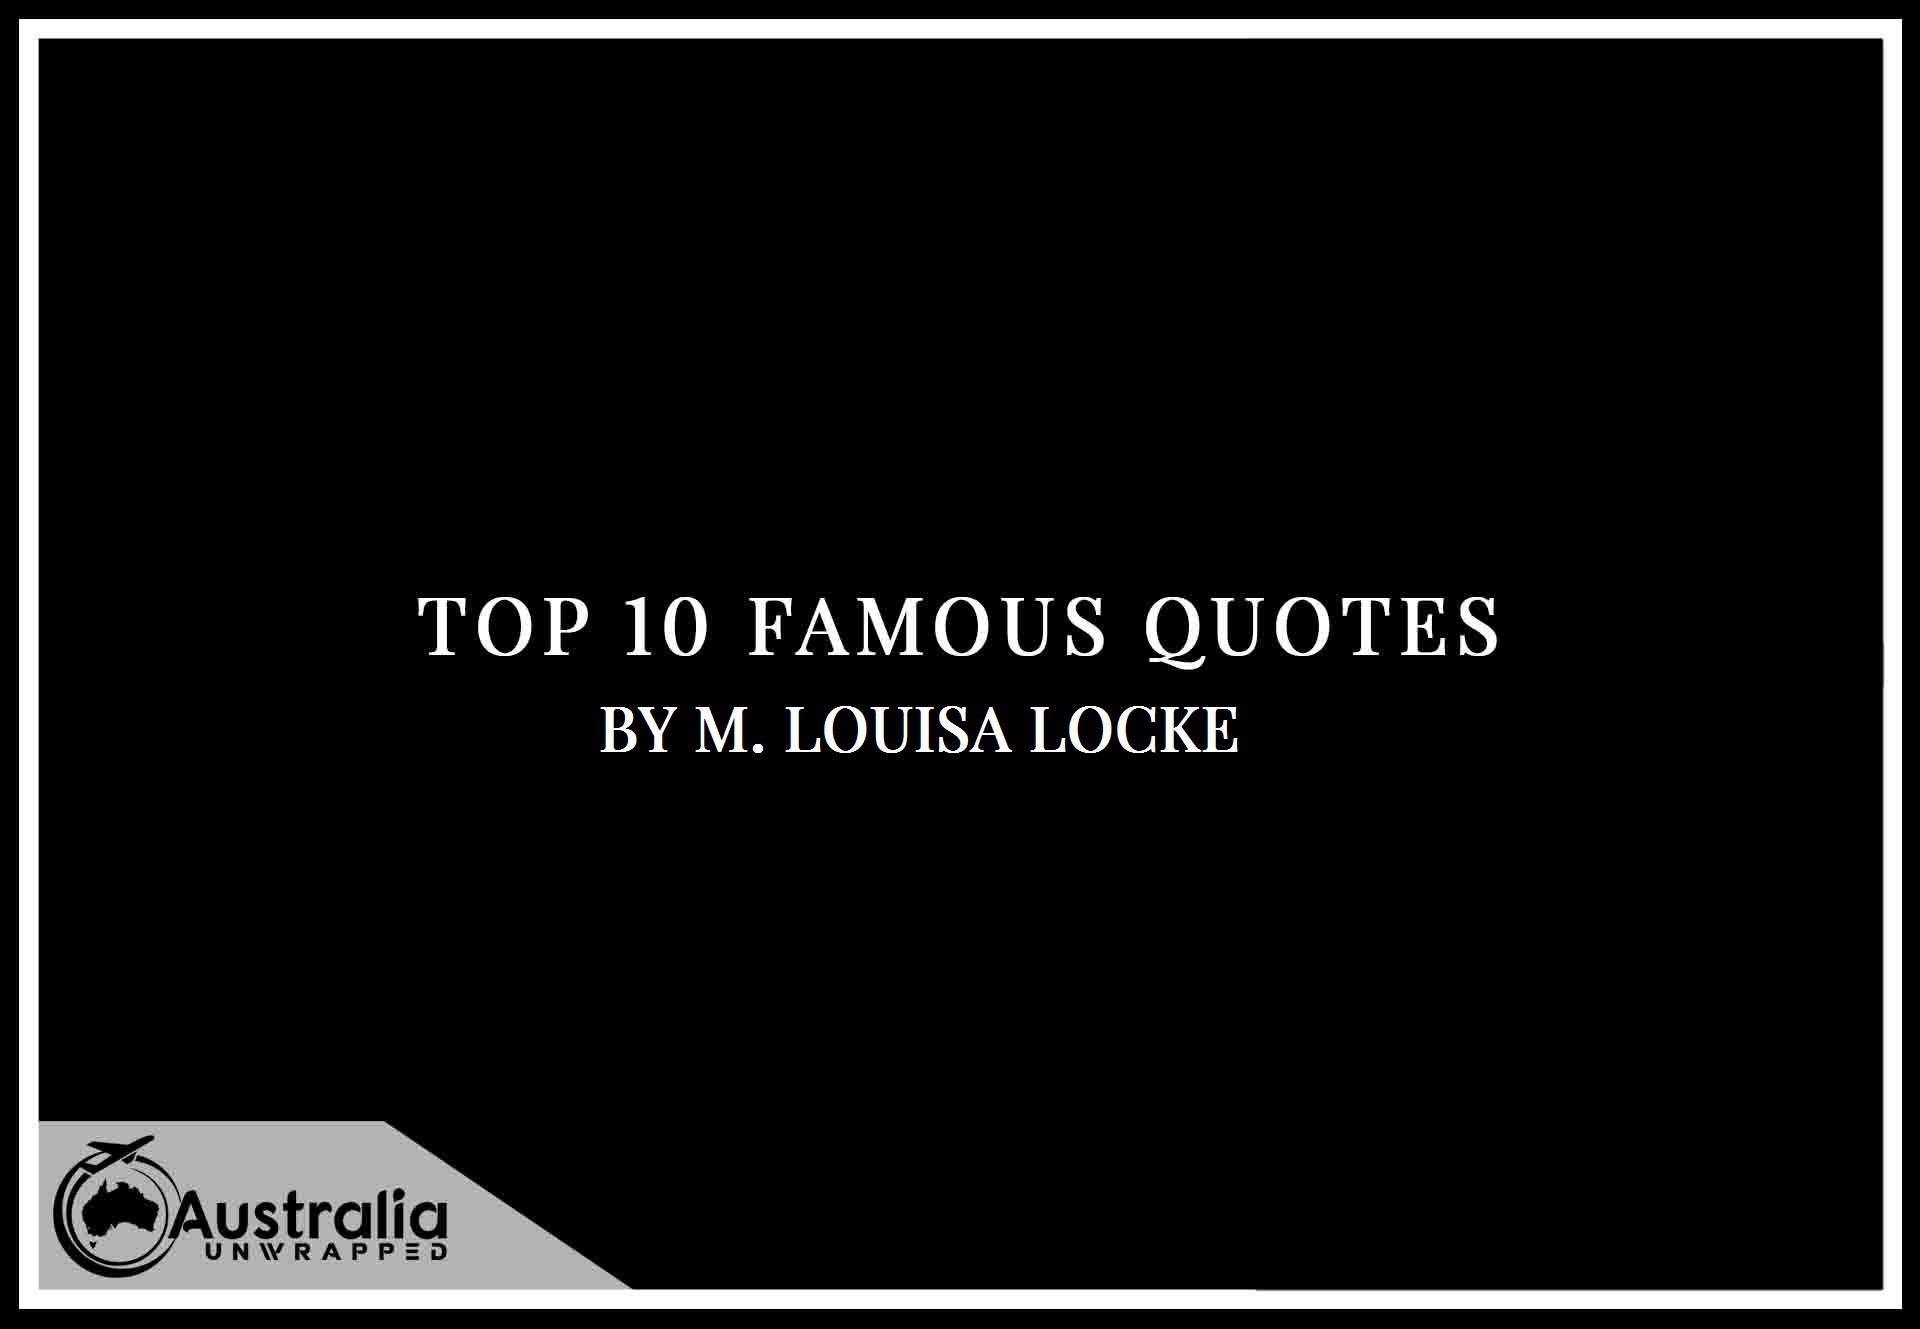 M. Louisa Locke's Top 10 Popular and Famous Quotes